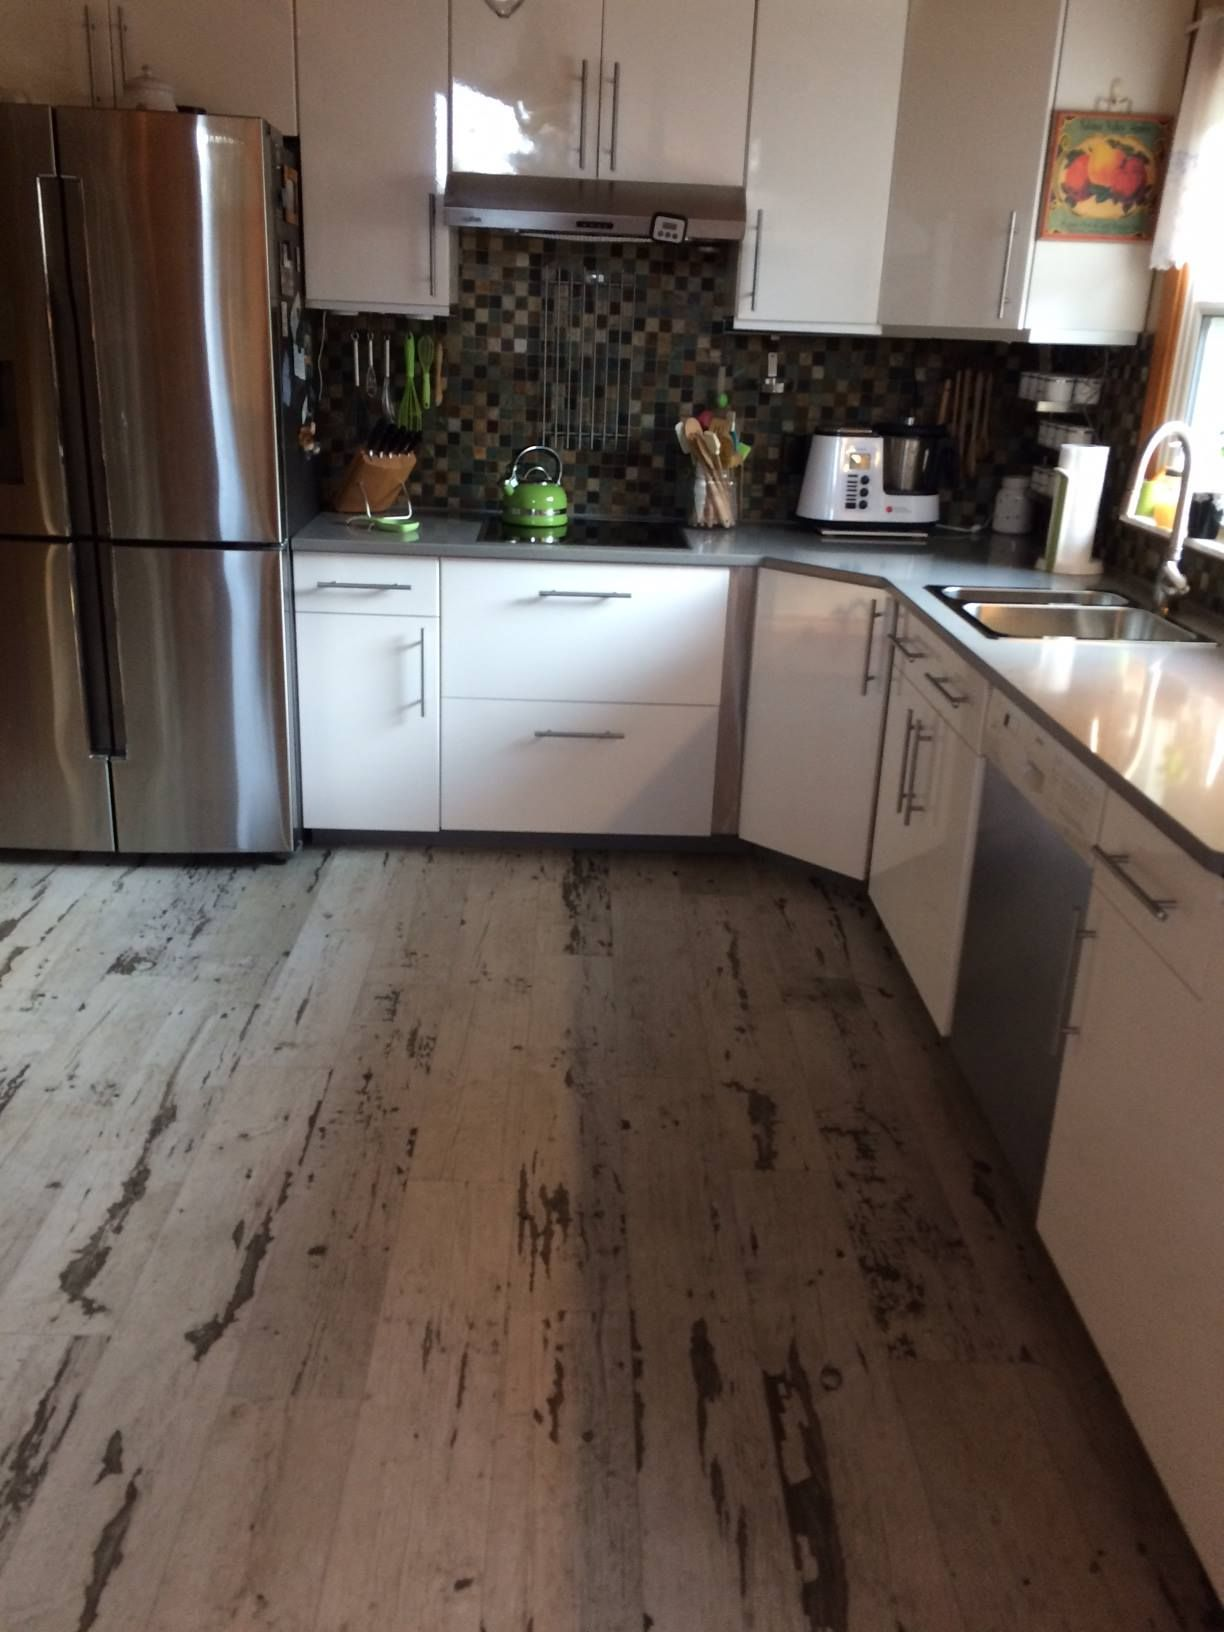 A distressed vinyl perfect for a kitchen vinyl flooring reclaimed distressed